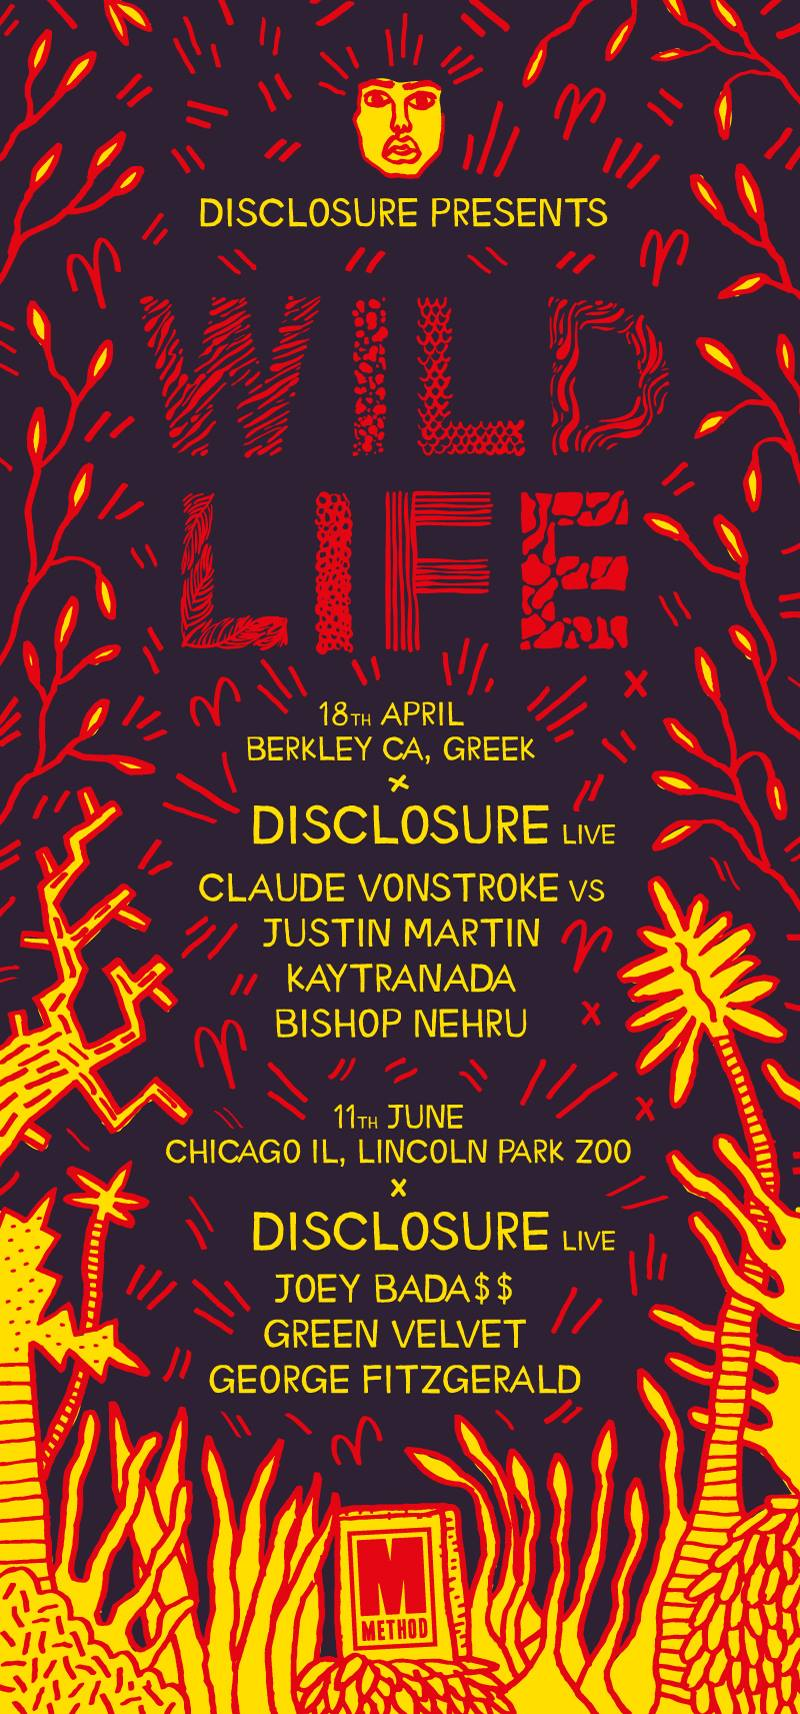 DisclosureWildLife